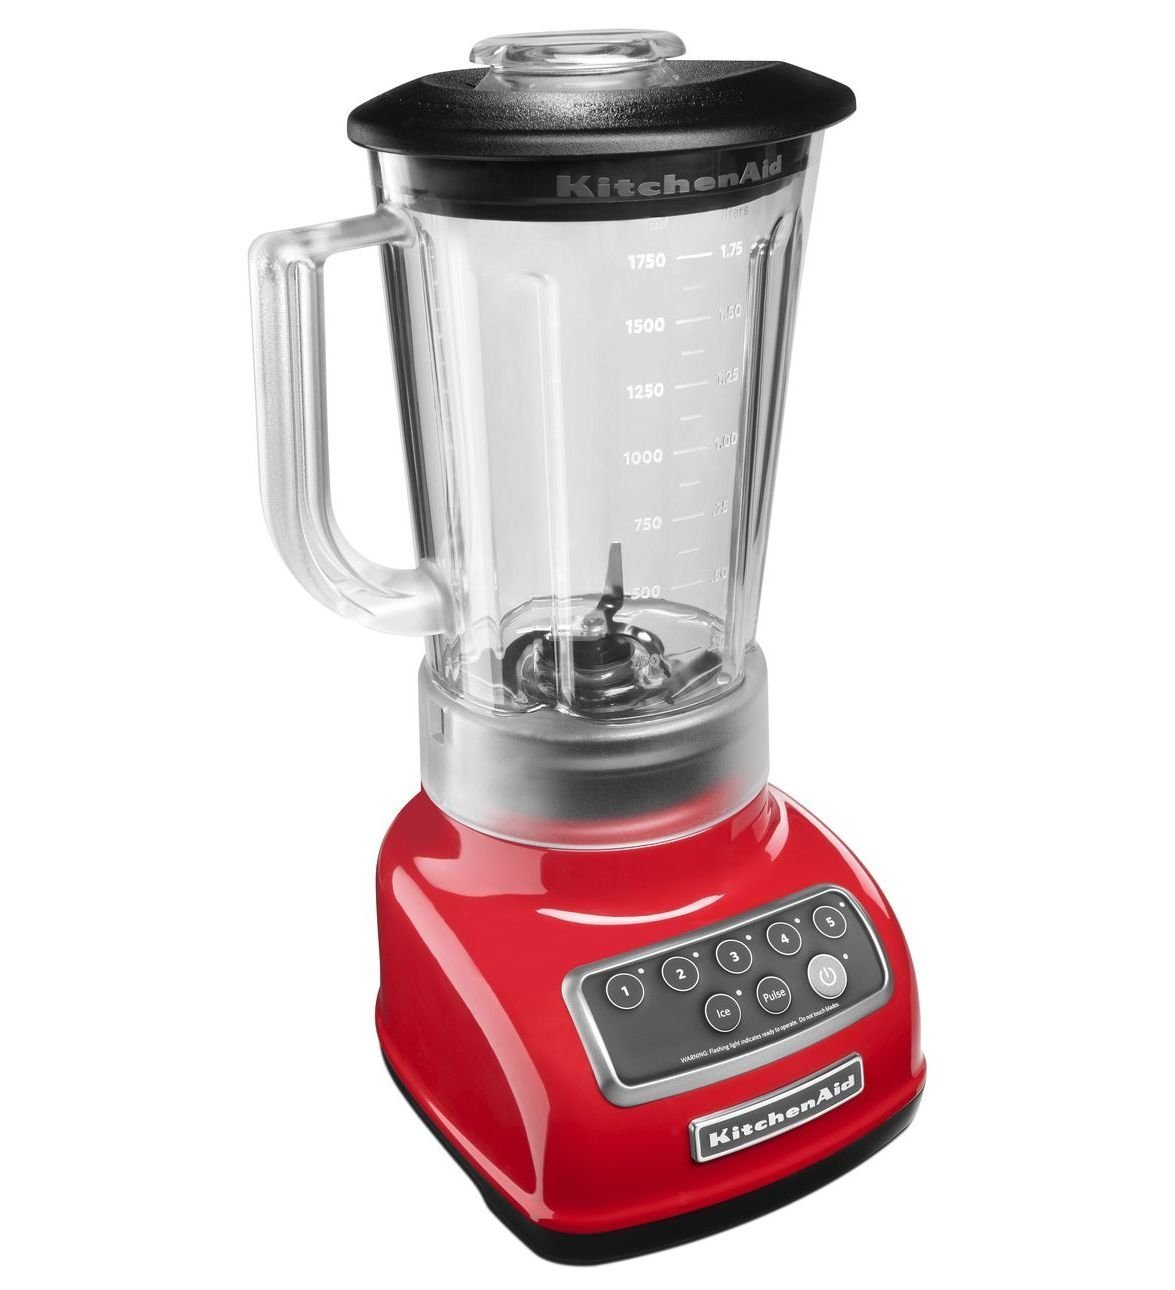 KitchenAid KSB1570ER Blender